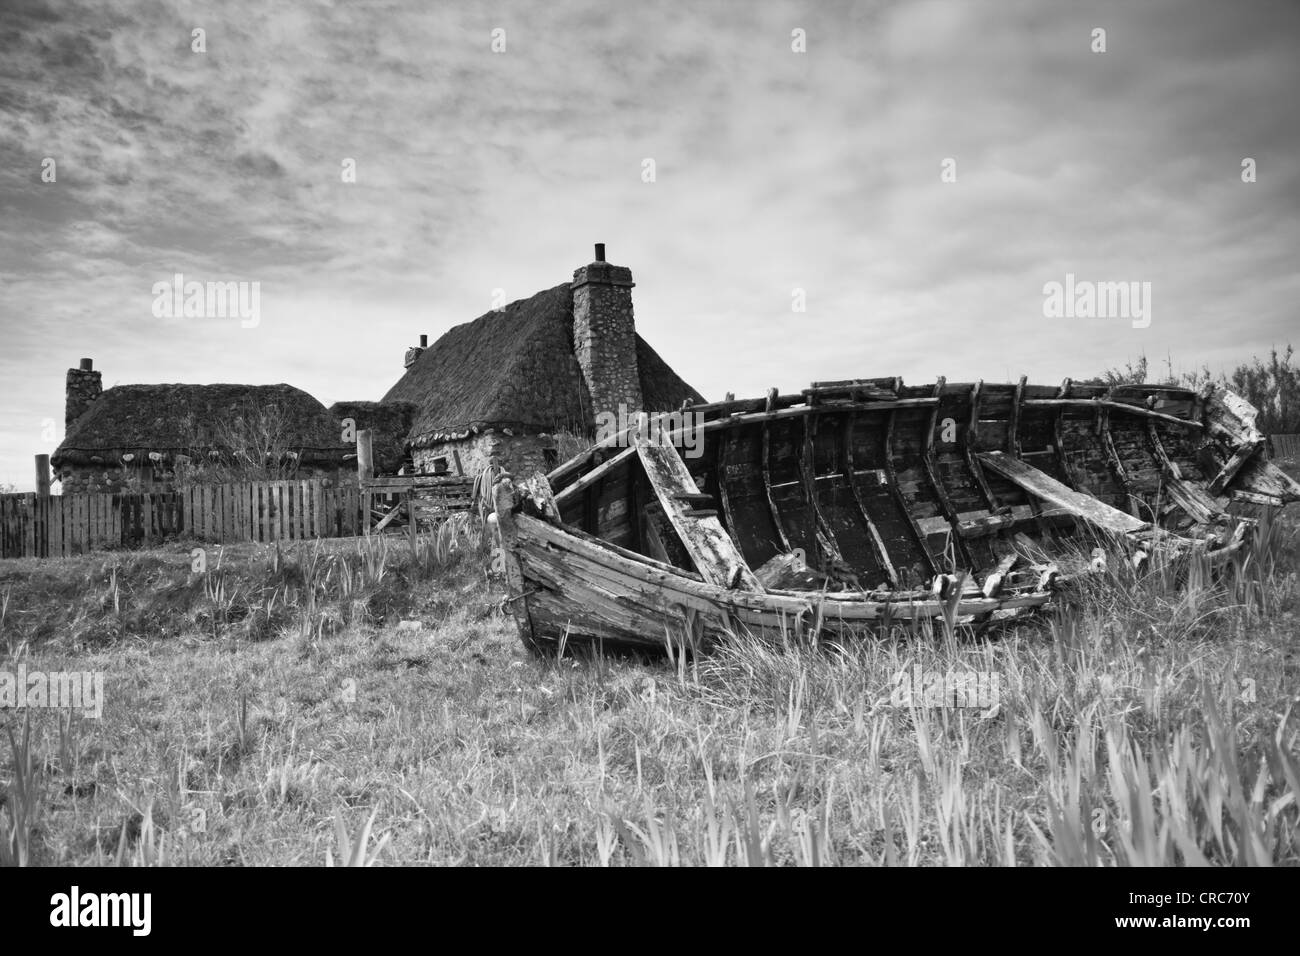 Ship abandoned in a field (Outer Hebrides) - Stock Image